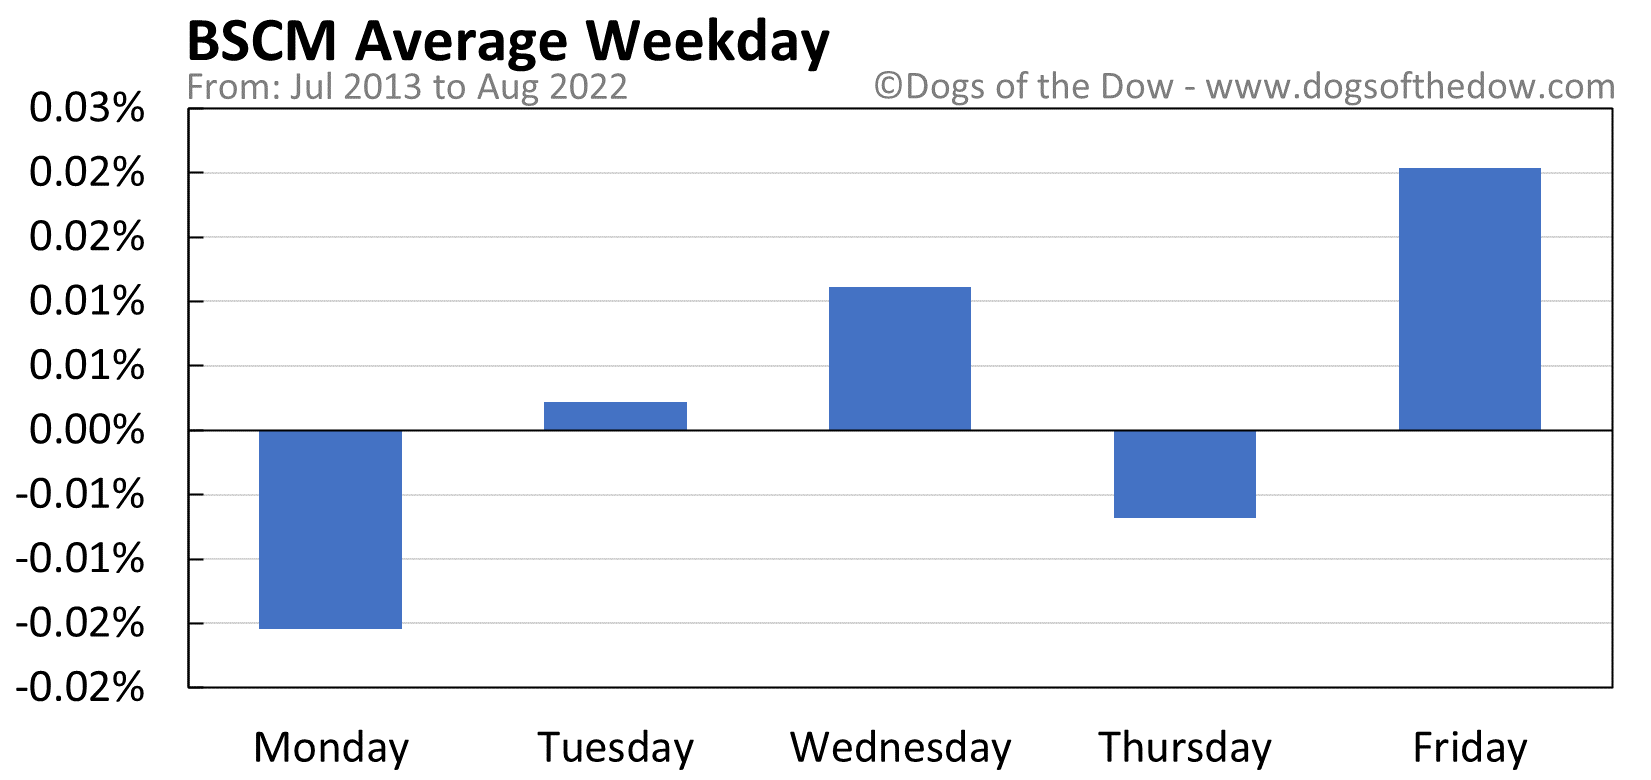 BSCM average weekday chart